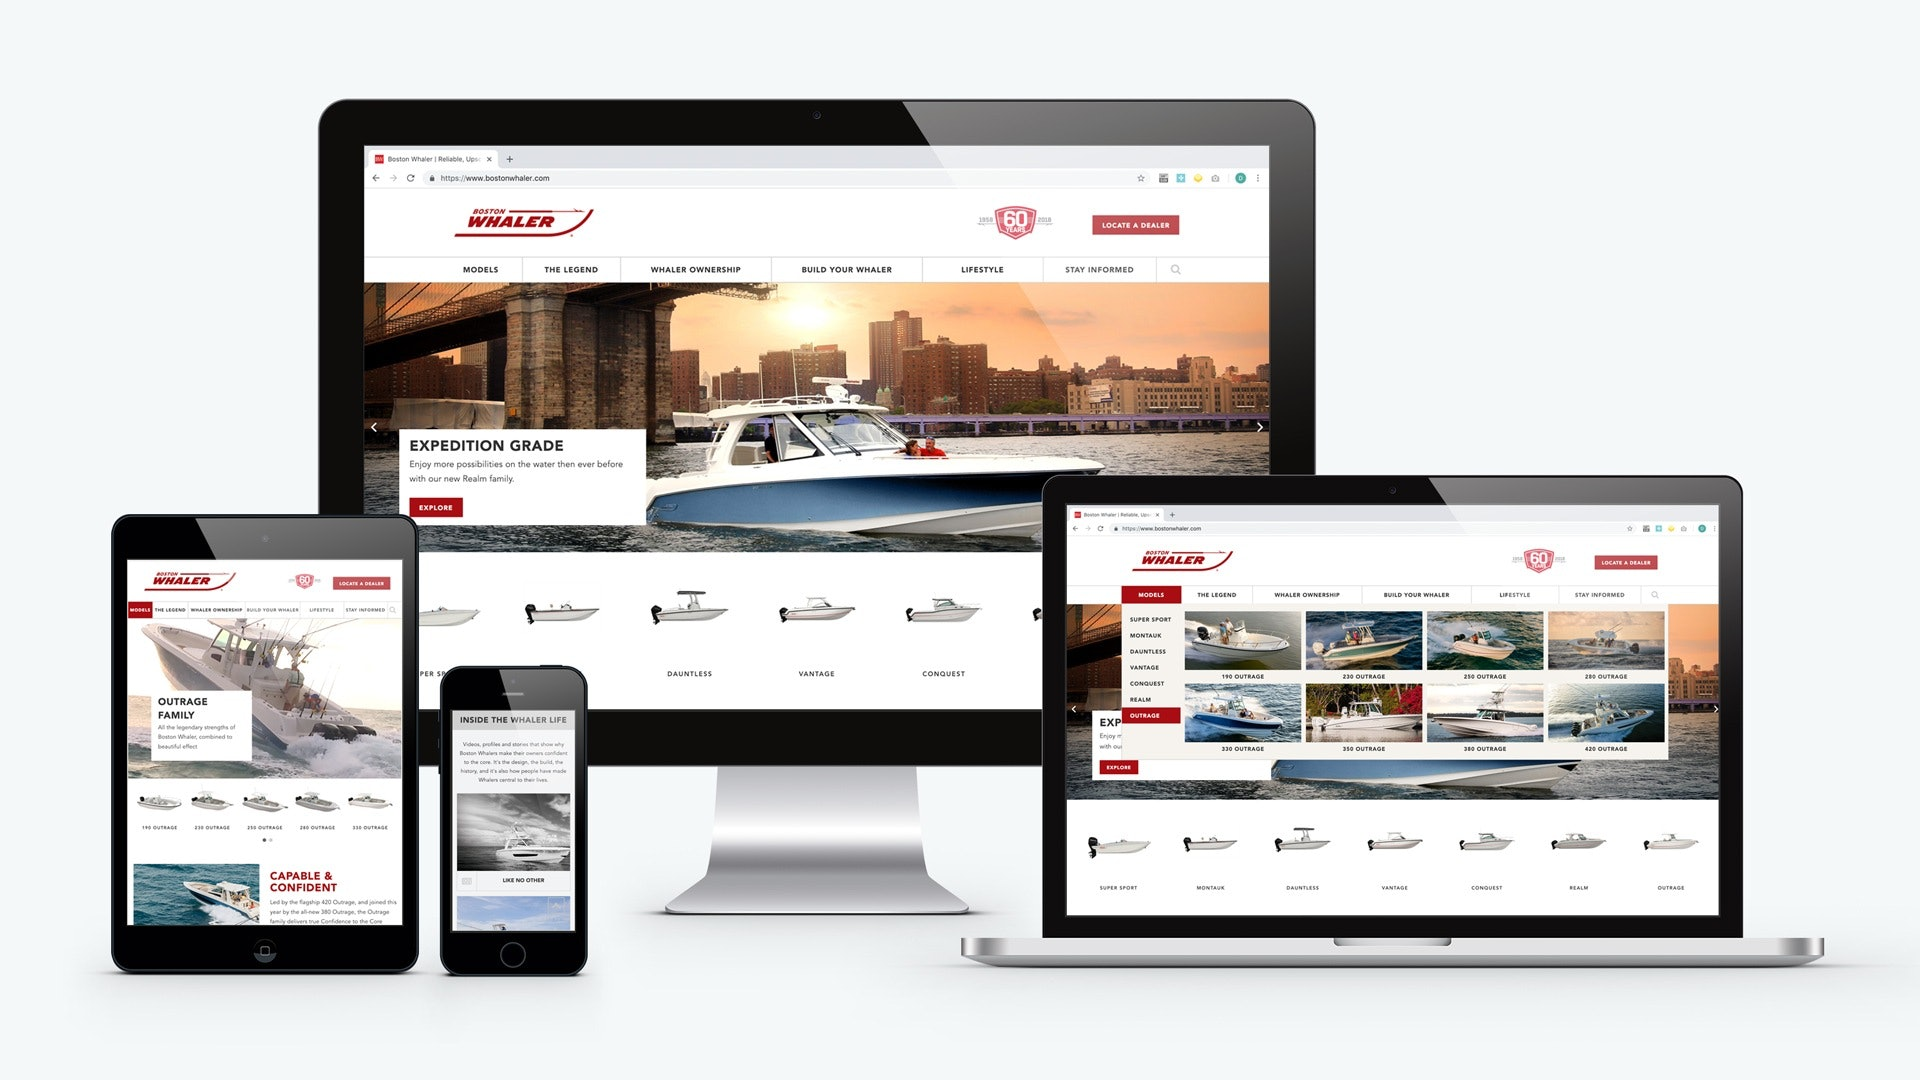 boston whaler website redesign on desktop, laptop, ipad, and iphone screens